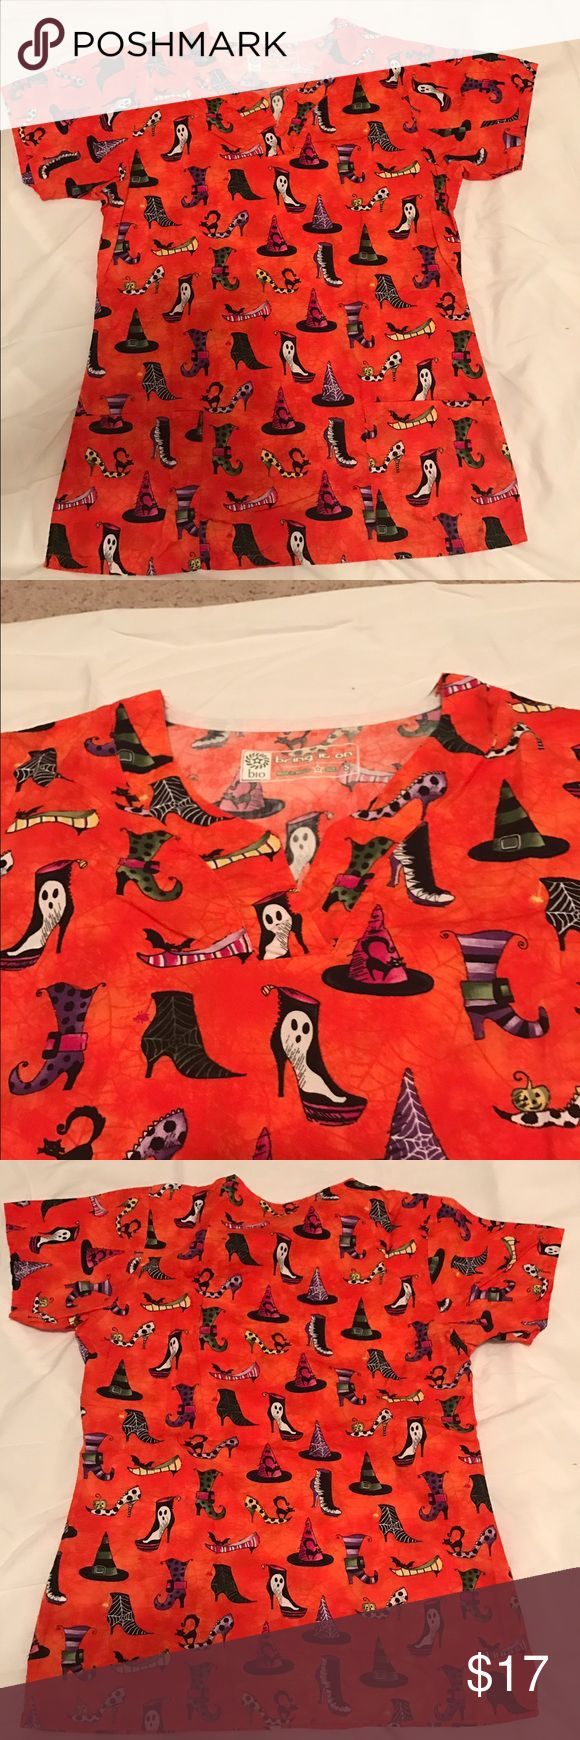 "Sassy Halloween Witch Hats & Heels Scrub Top Orange Halloween V neck scrub top with 2 pockets. Size S. 19.25"" across front. Excellent condition. Price firm unless bundled. Bio Tops Tunics"